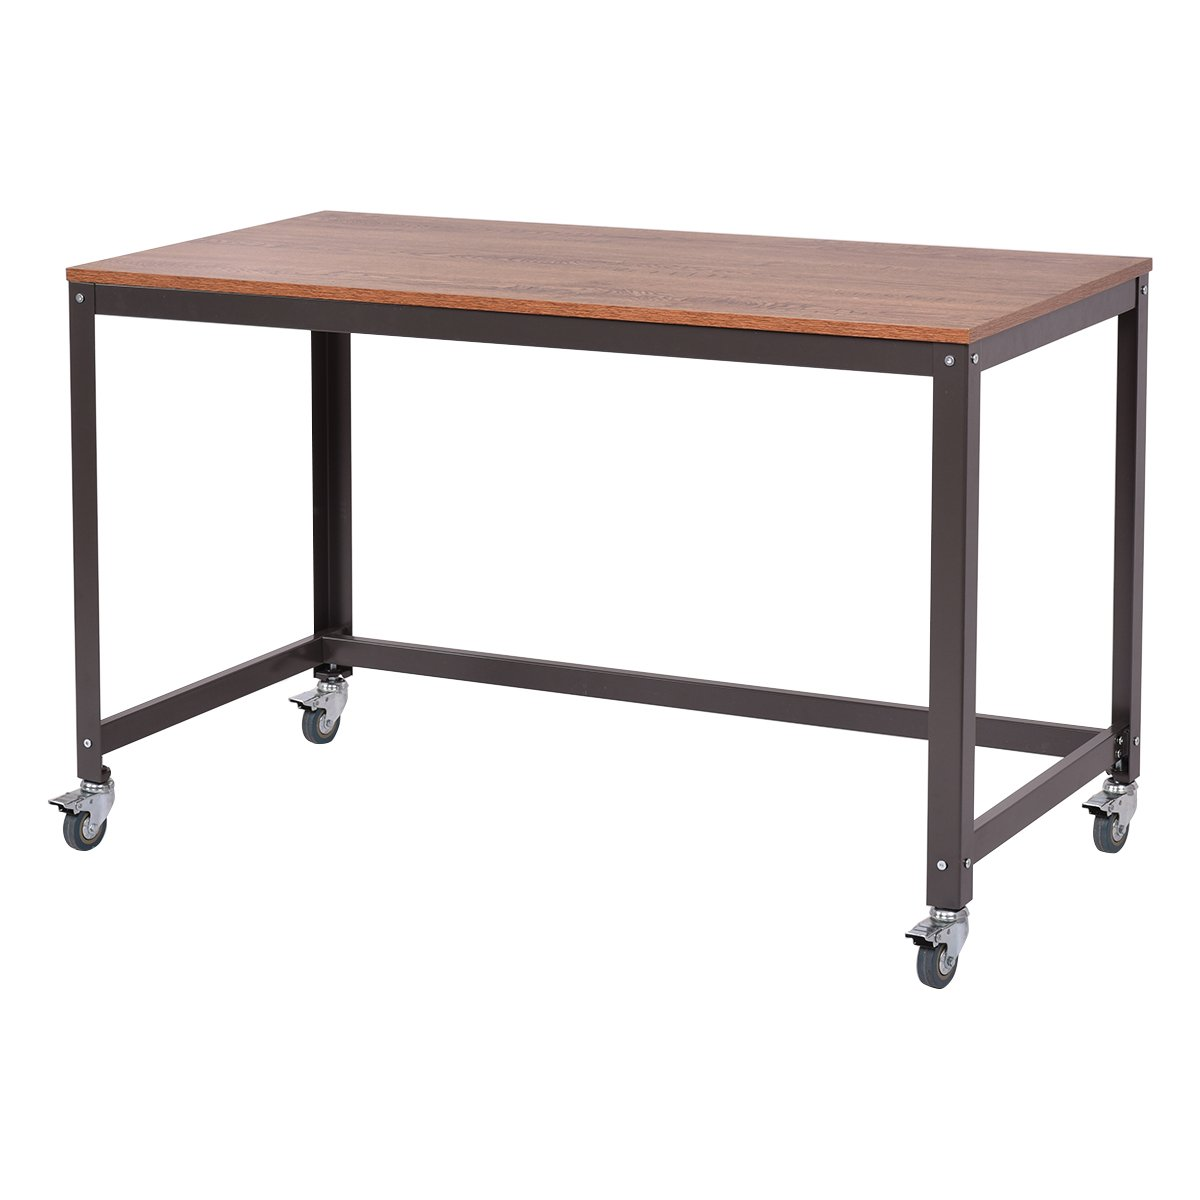 TANGKULA Computer Desk Wood Portable Compact Simple Style Home Office Study Table Writing Desk Workstatation with Wheels, Home Office Collection Work Table (Black Walnut)